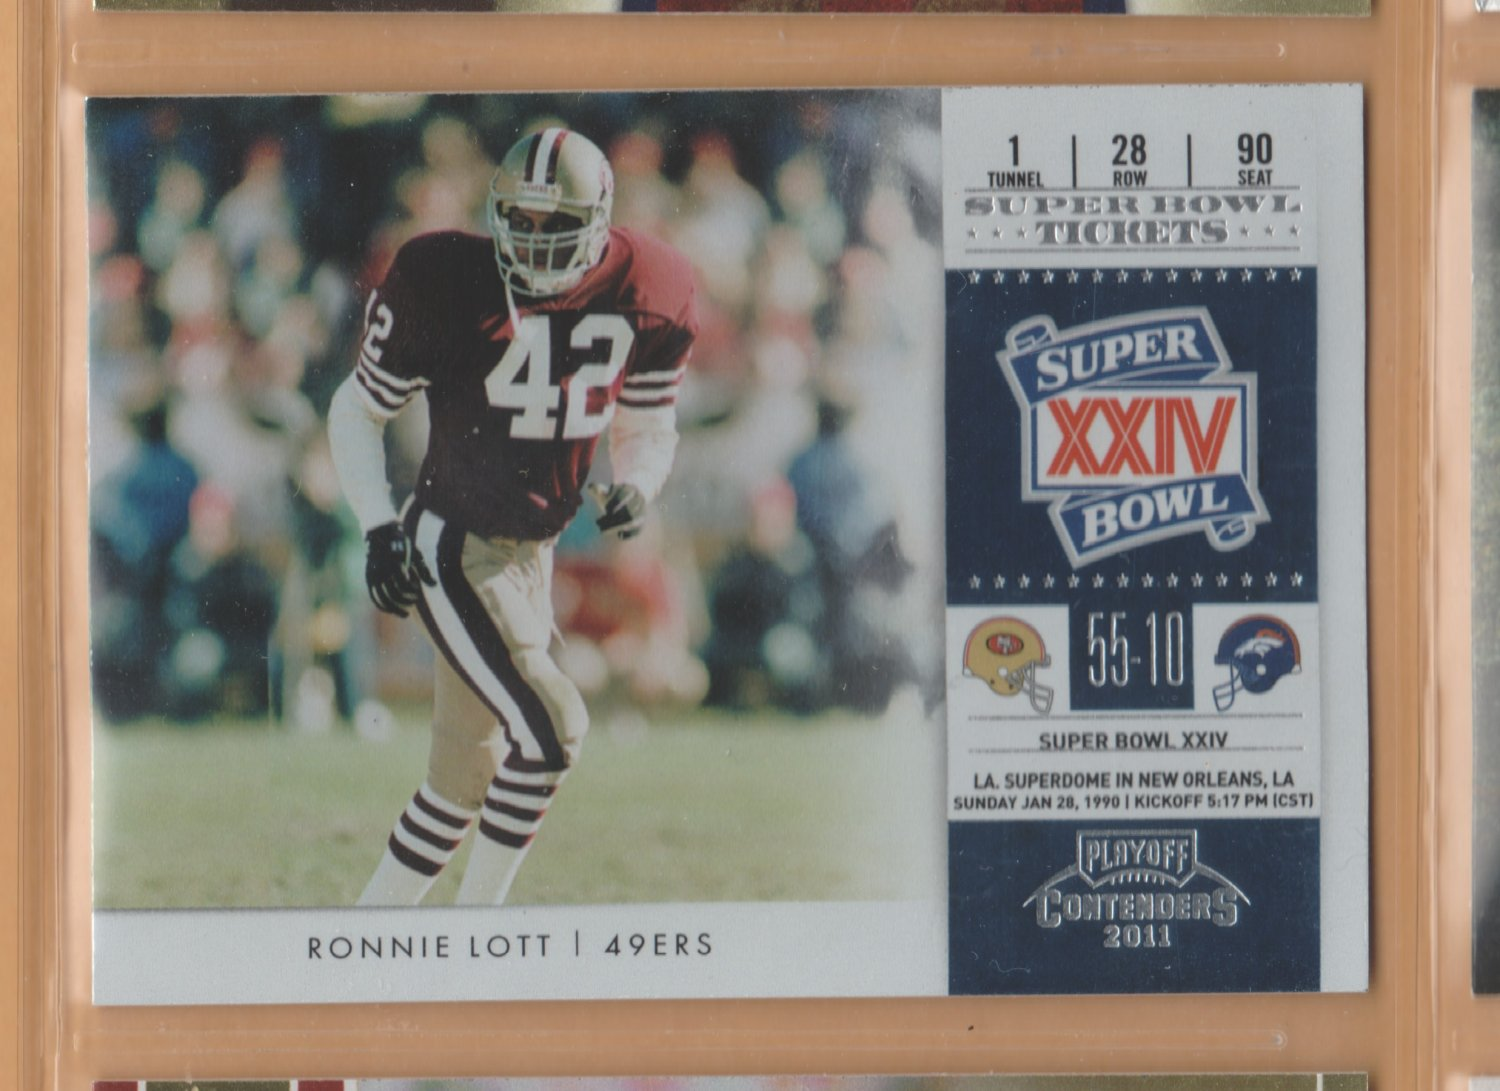 2012 Playoff Contenders Super Bowl Tickets Ronnie Lott 49ers